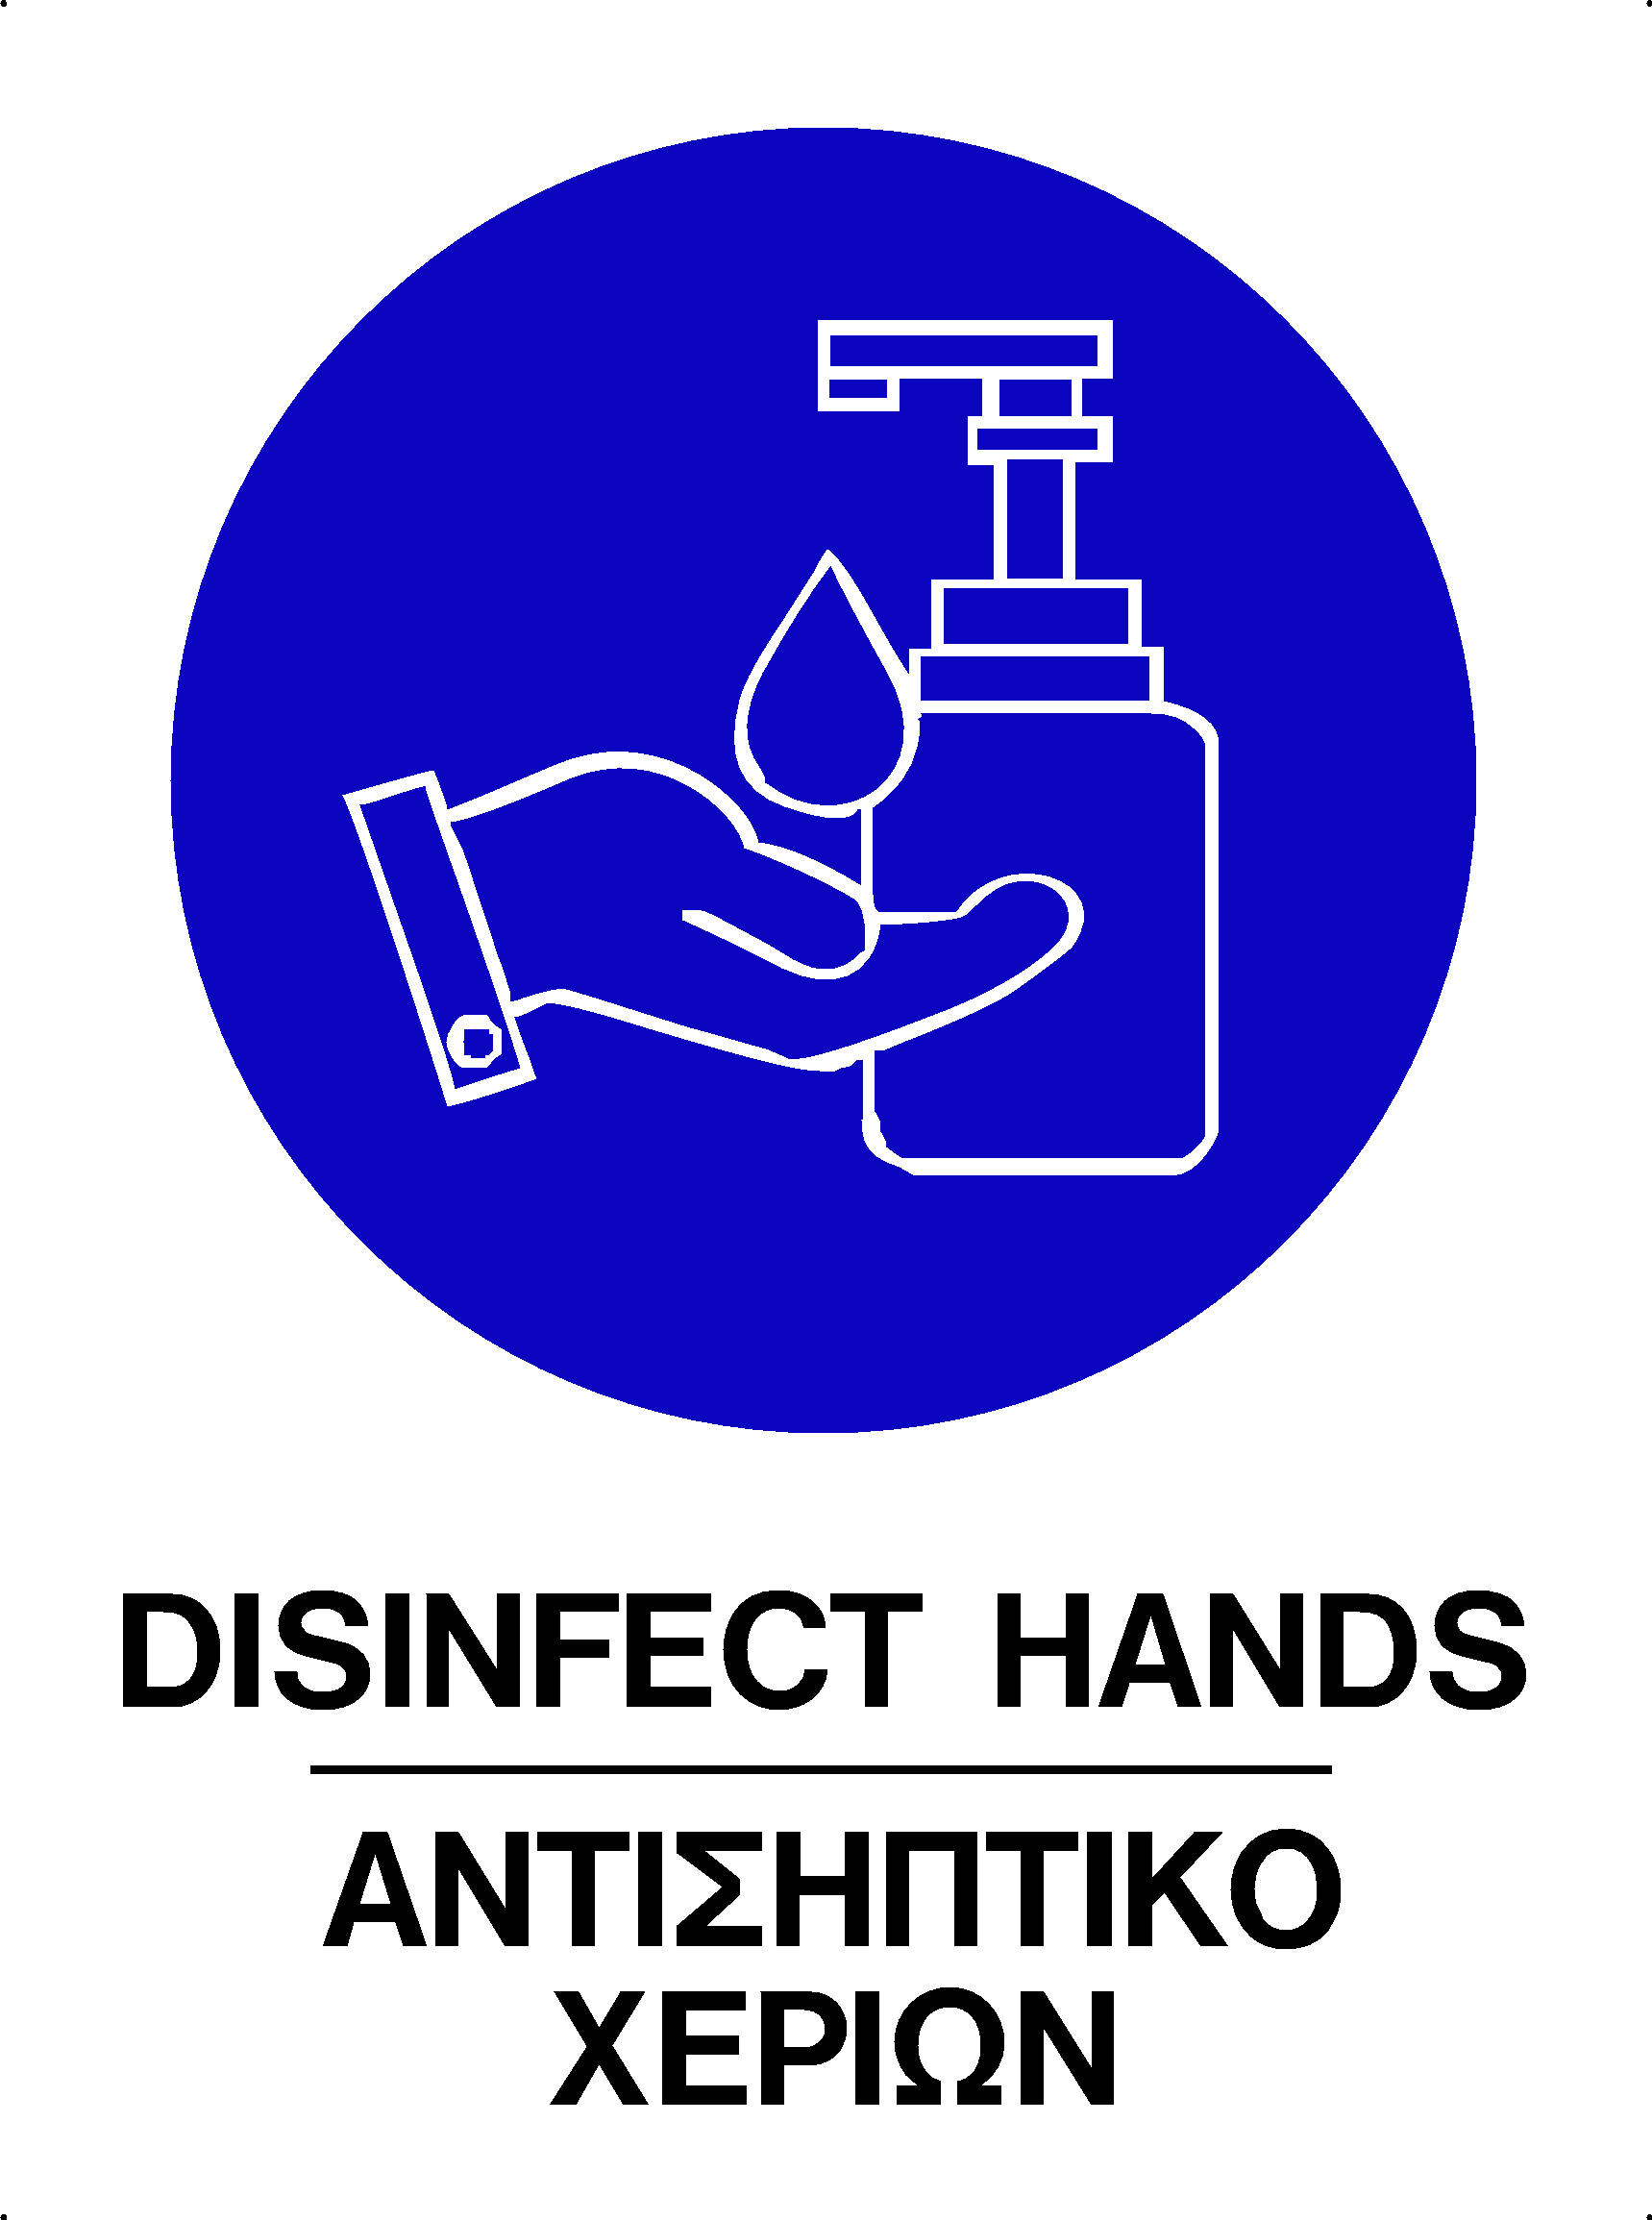 DISINFECT HANDS SIGN